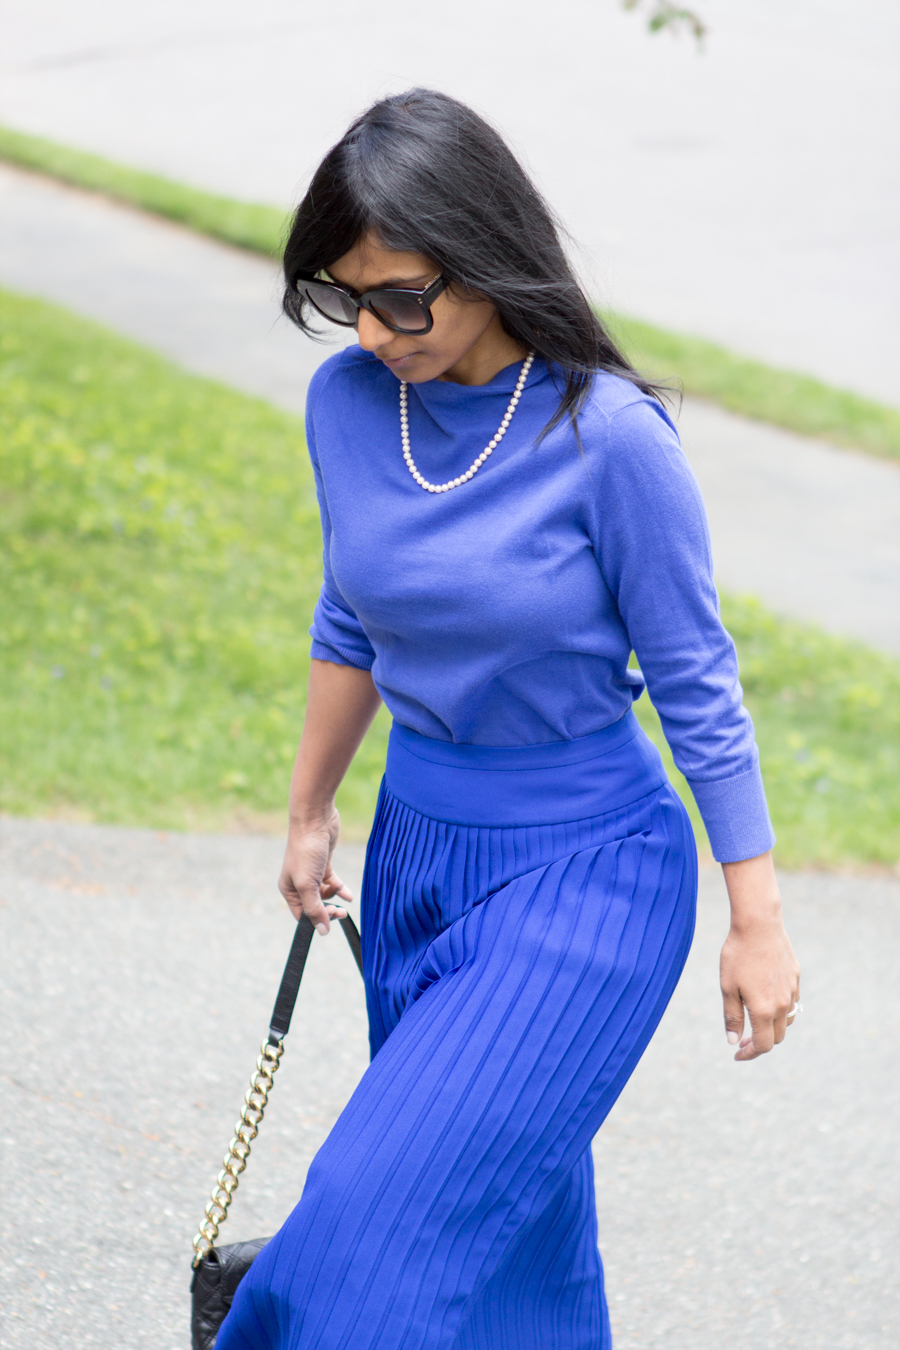 spring style, business casual, work outfit, ladylike, elegant, midiskirt, pleated skirt, cobalt blue, royal blue, blue pumps, sole society, j.crew style, mommy style, petite fashion, lookbook